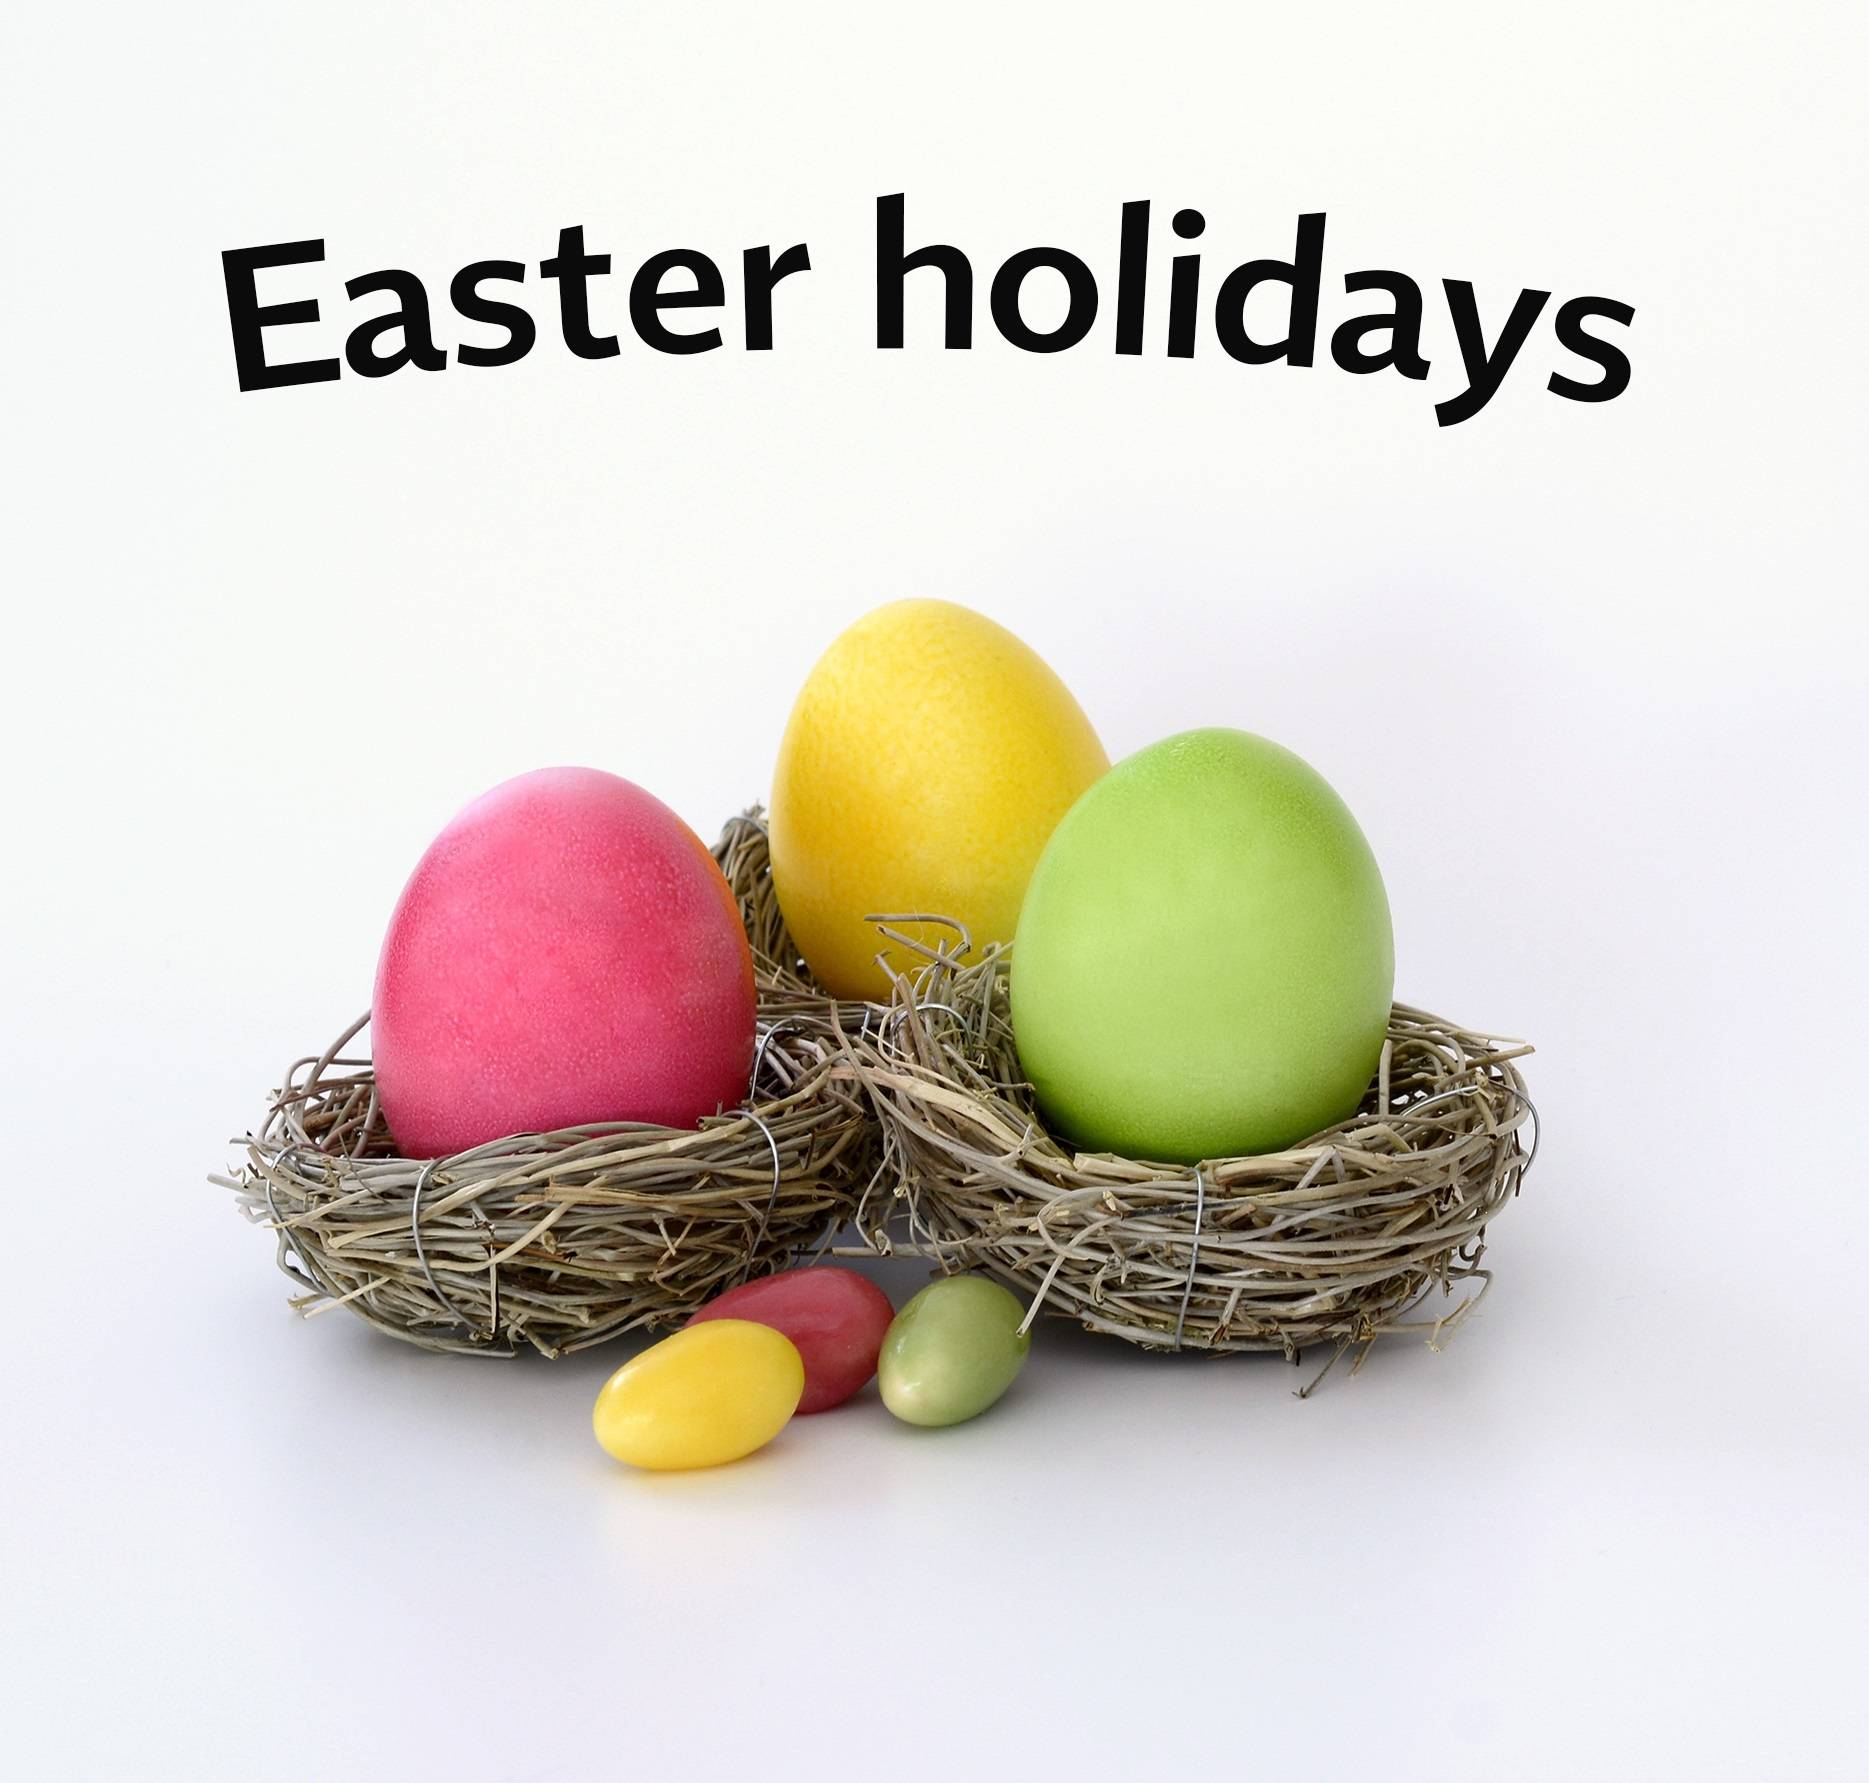 TOMCAT offices closed for the Easter holidays